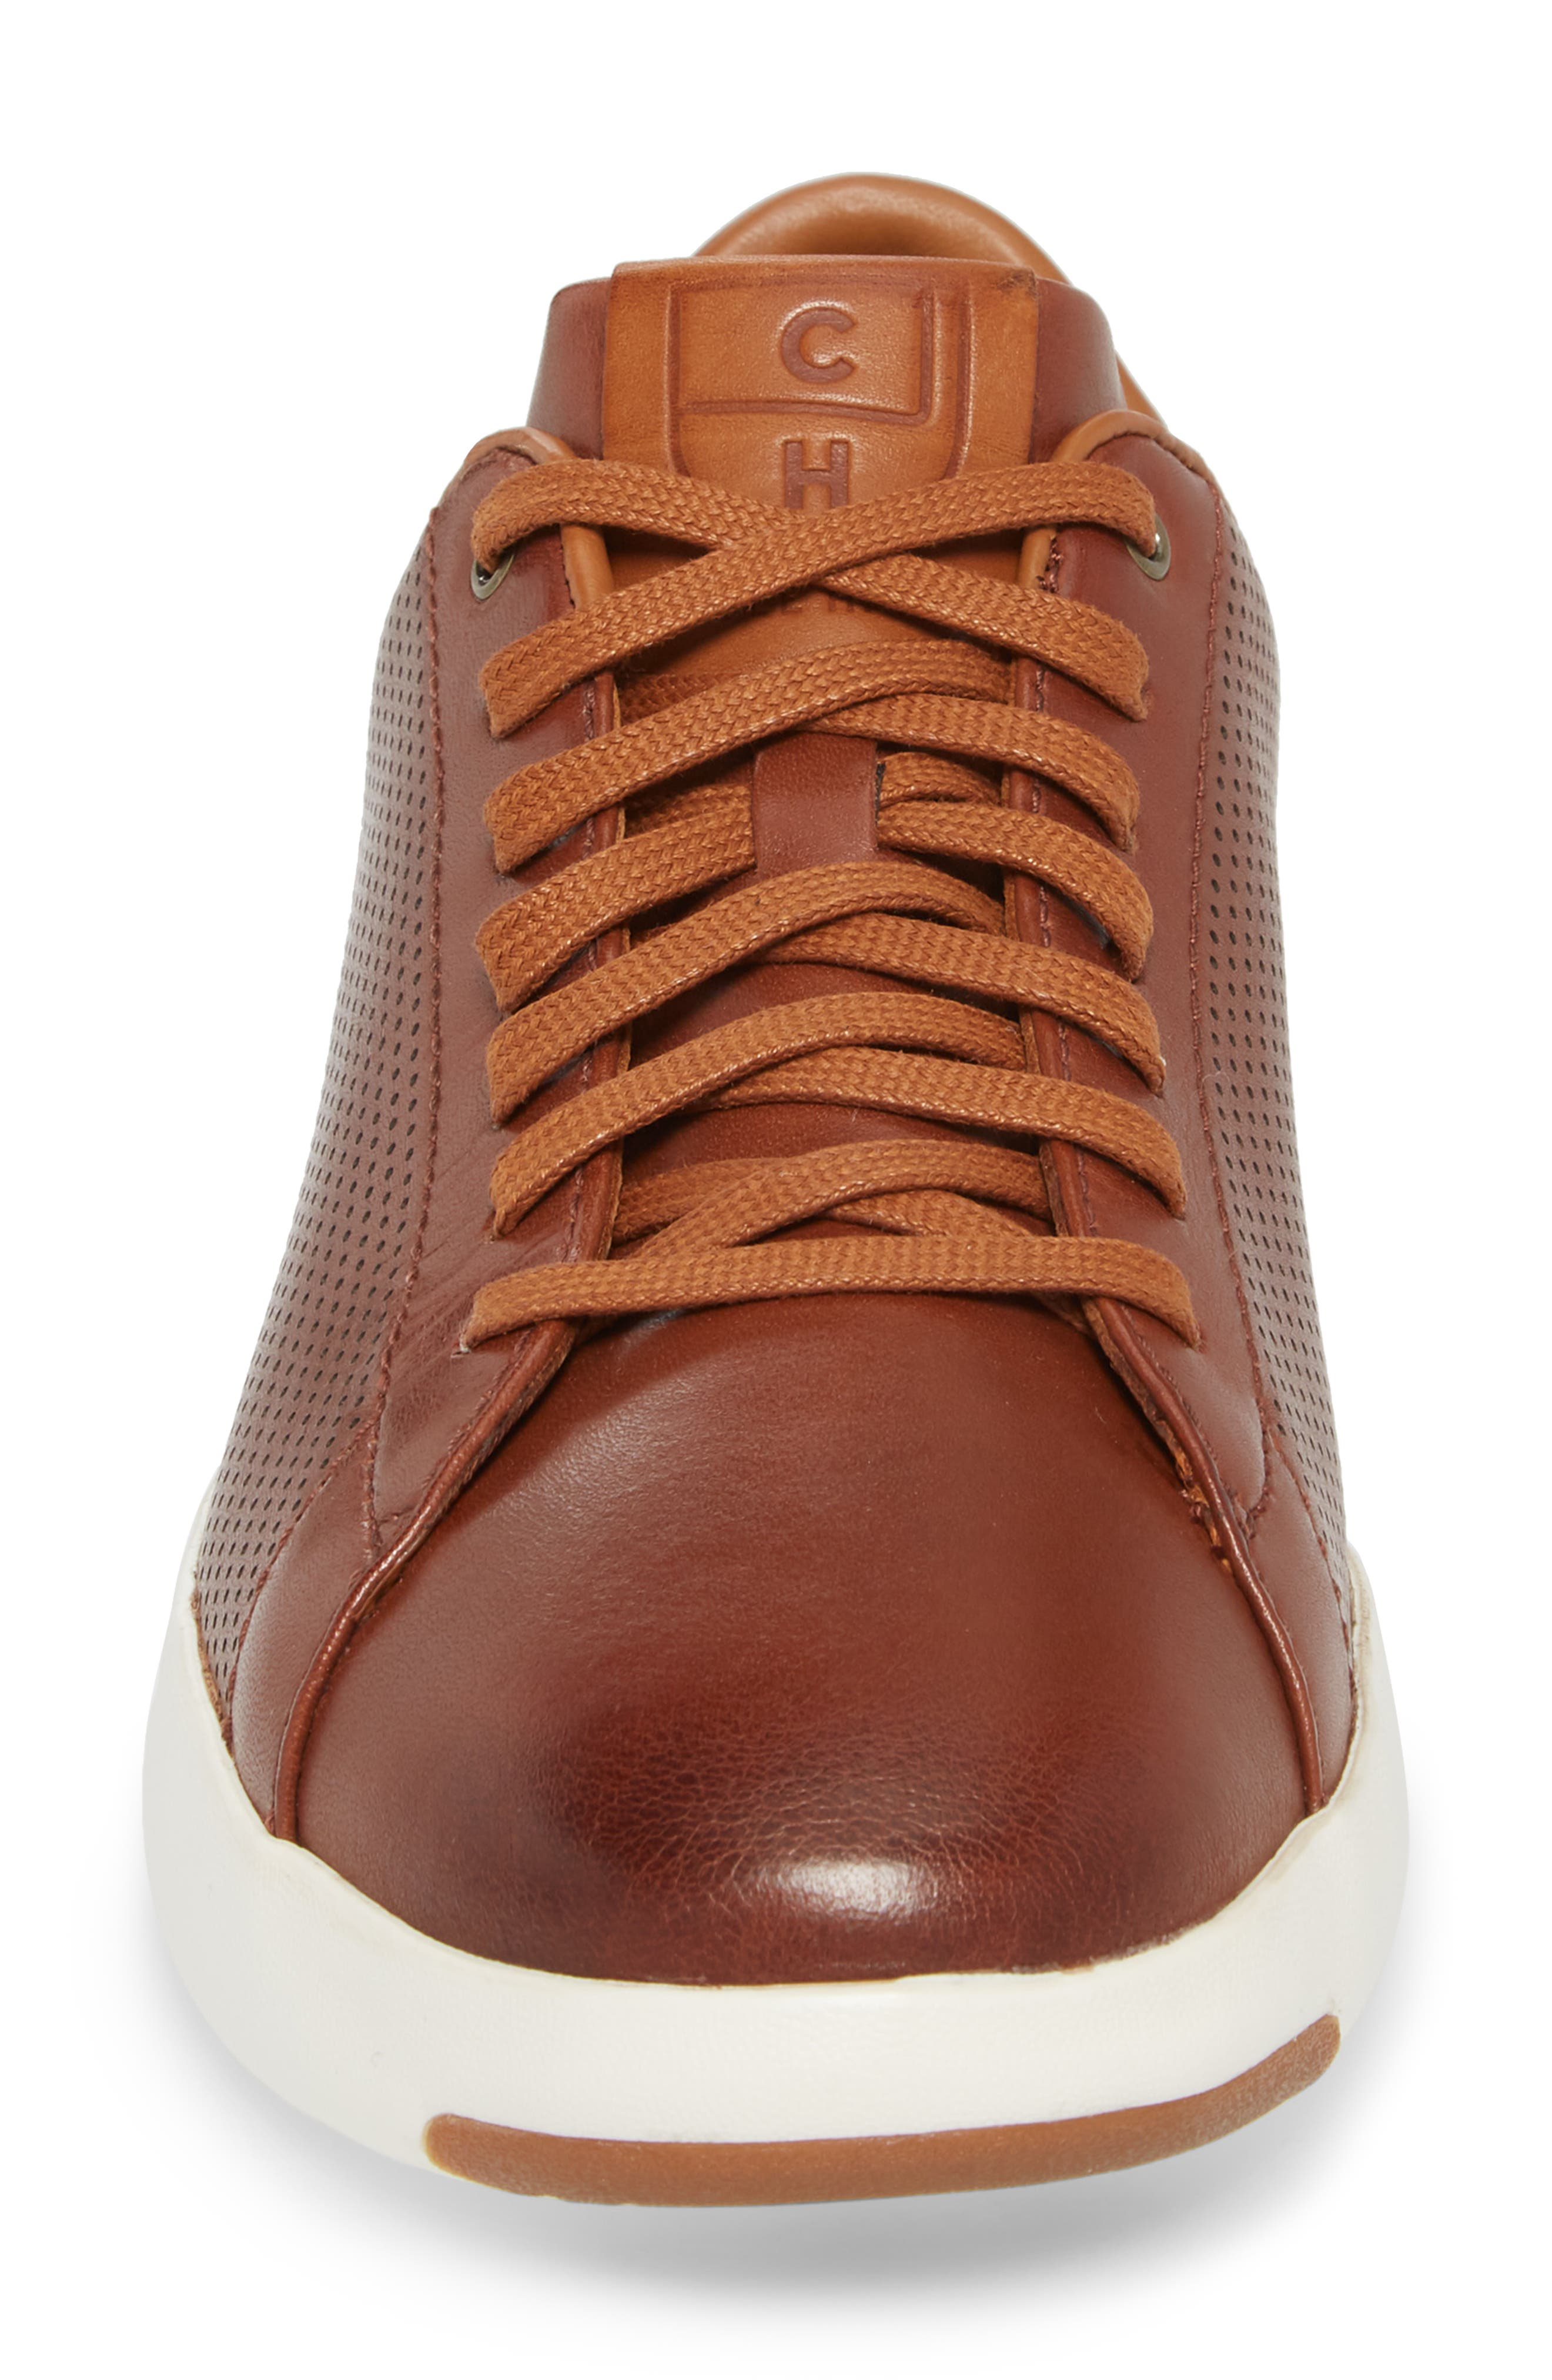 GrandPrø Perforated Low Top Sneaker,                             Alternate thumbnail 4, color,                             WOODBURY LEATHER